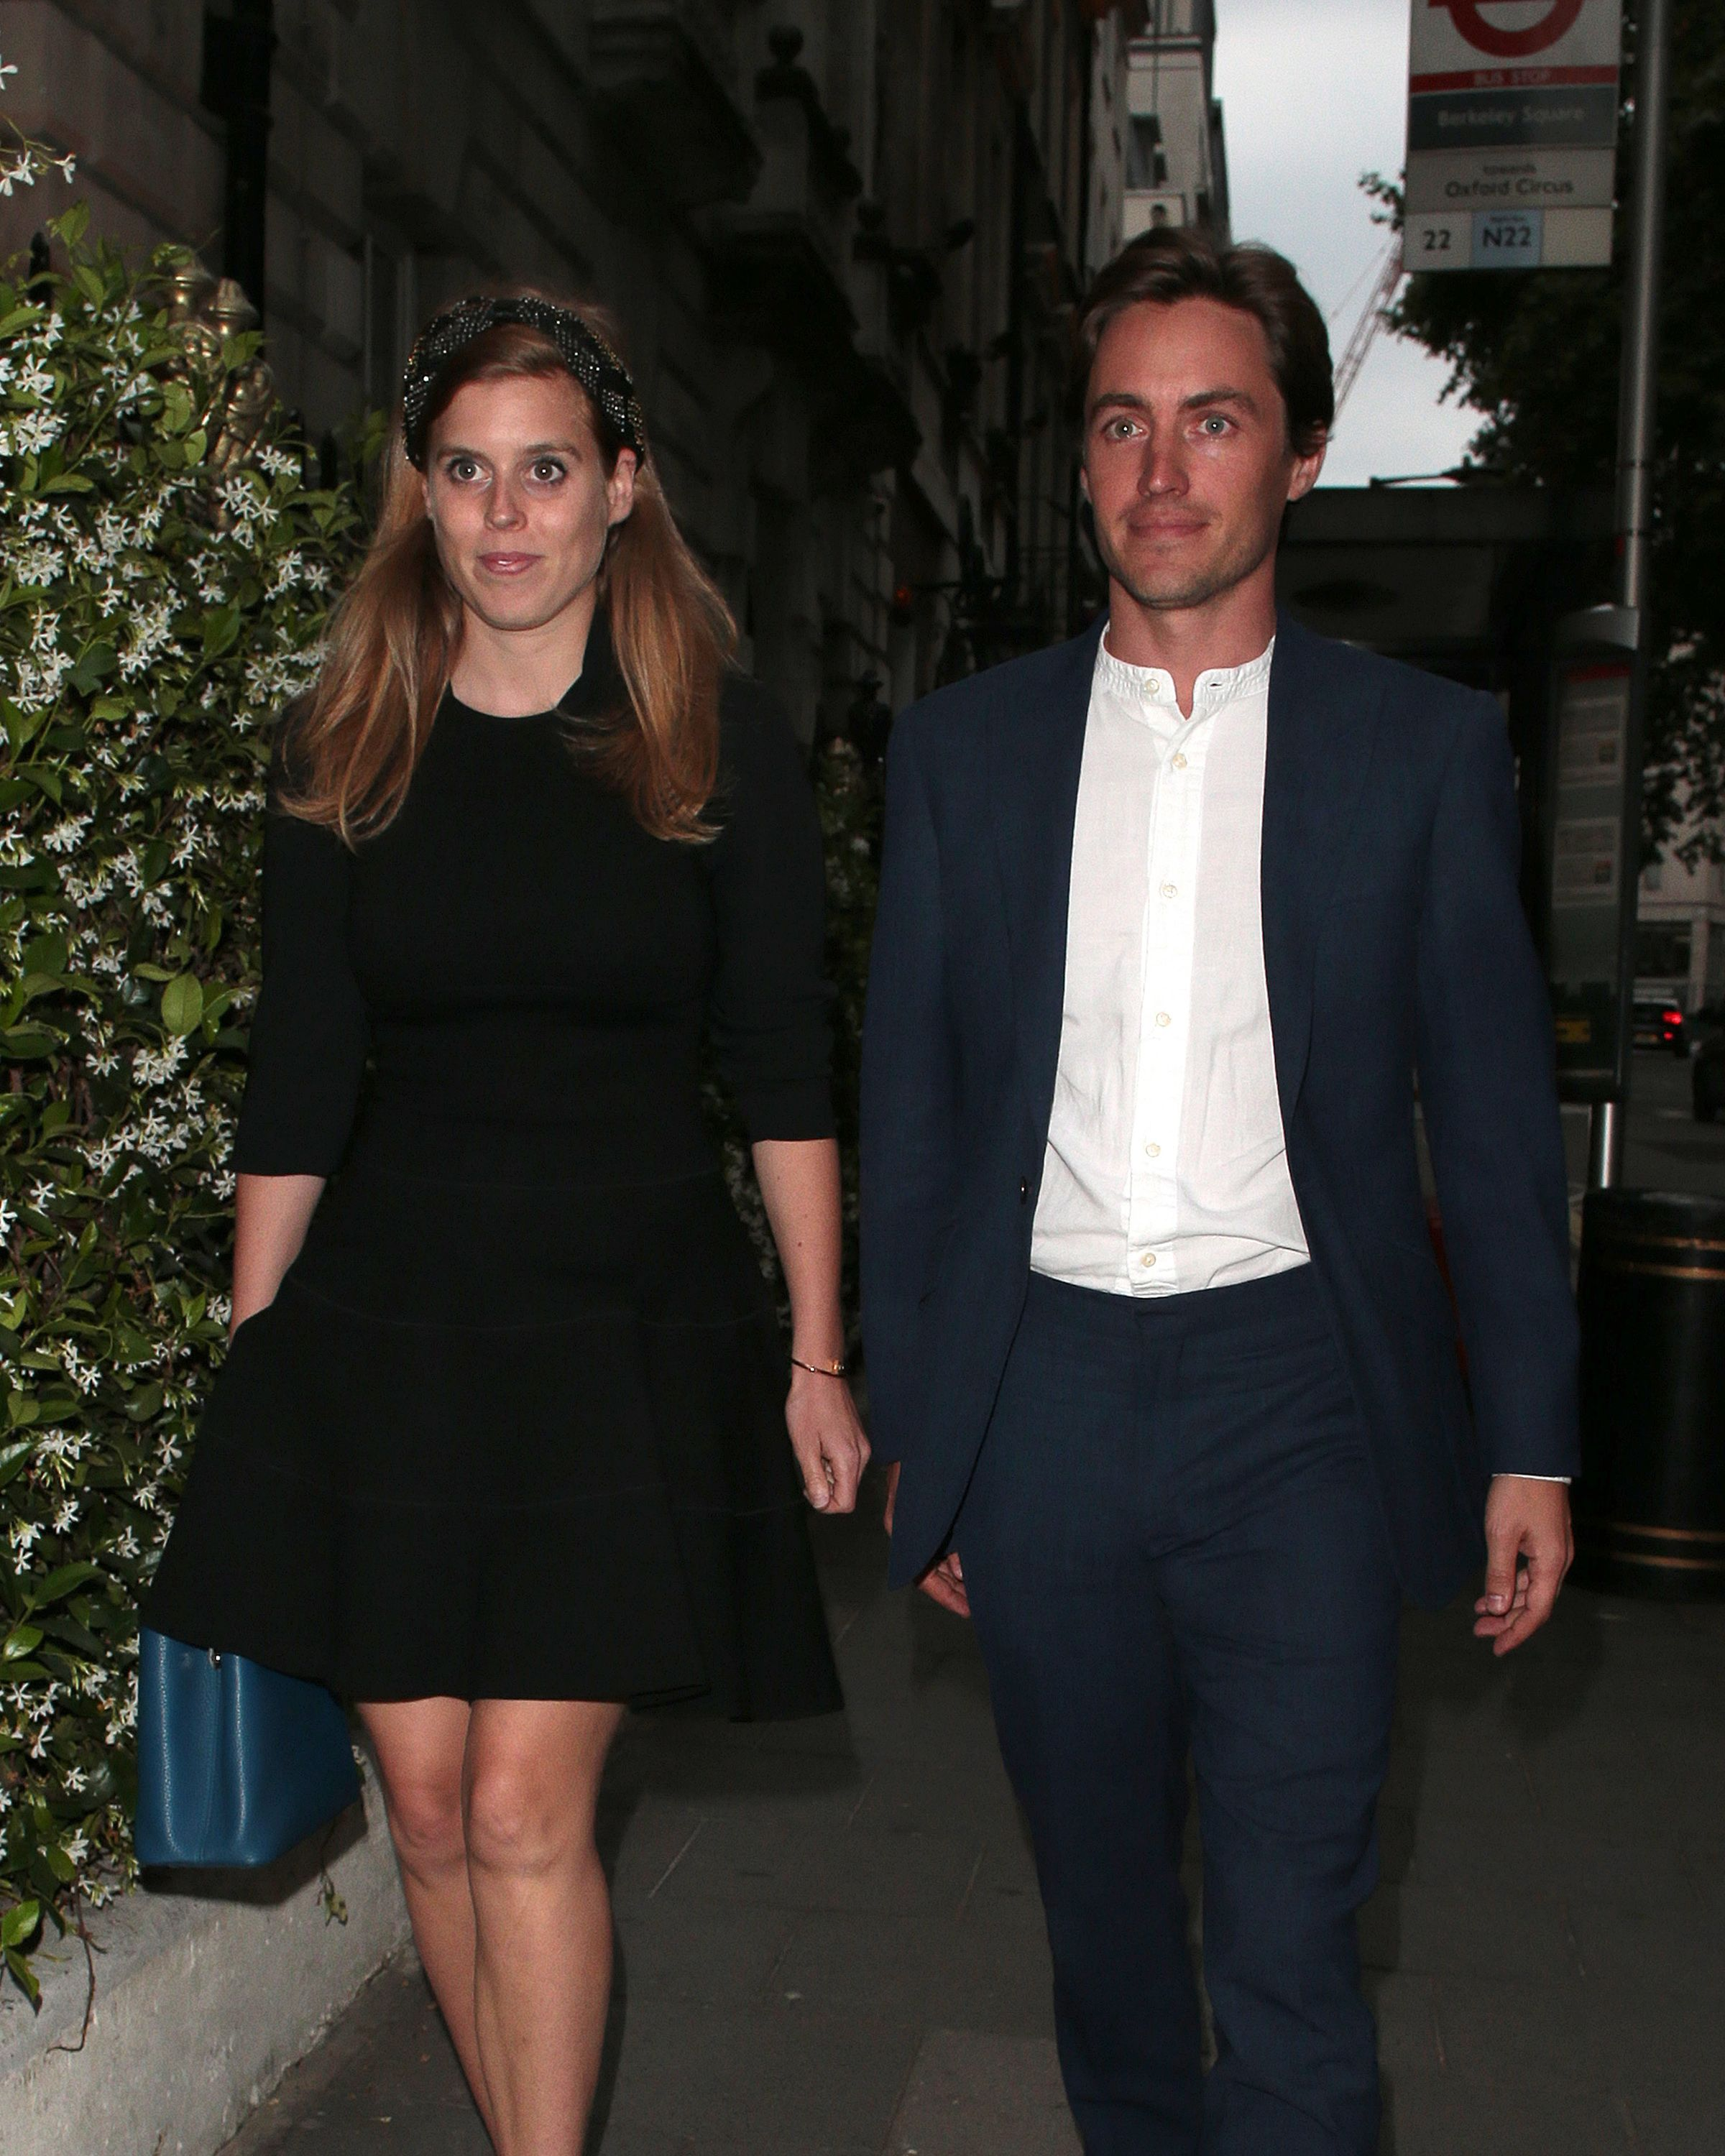 A timeline of Princess Beatrice's relationship with Edoardo Mapelli Mozzi